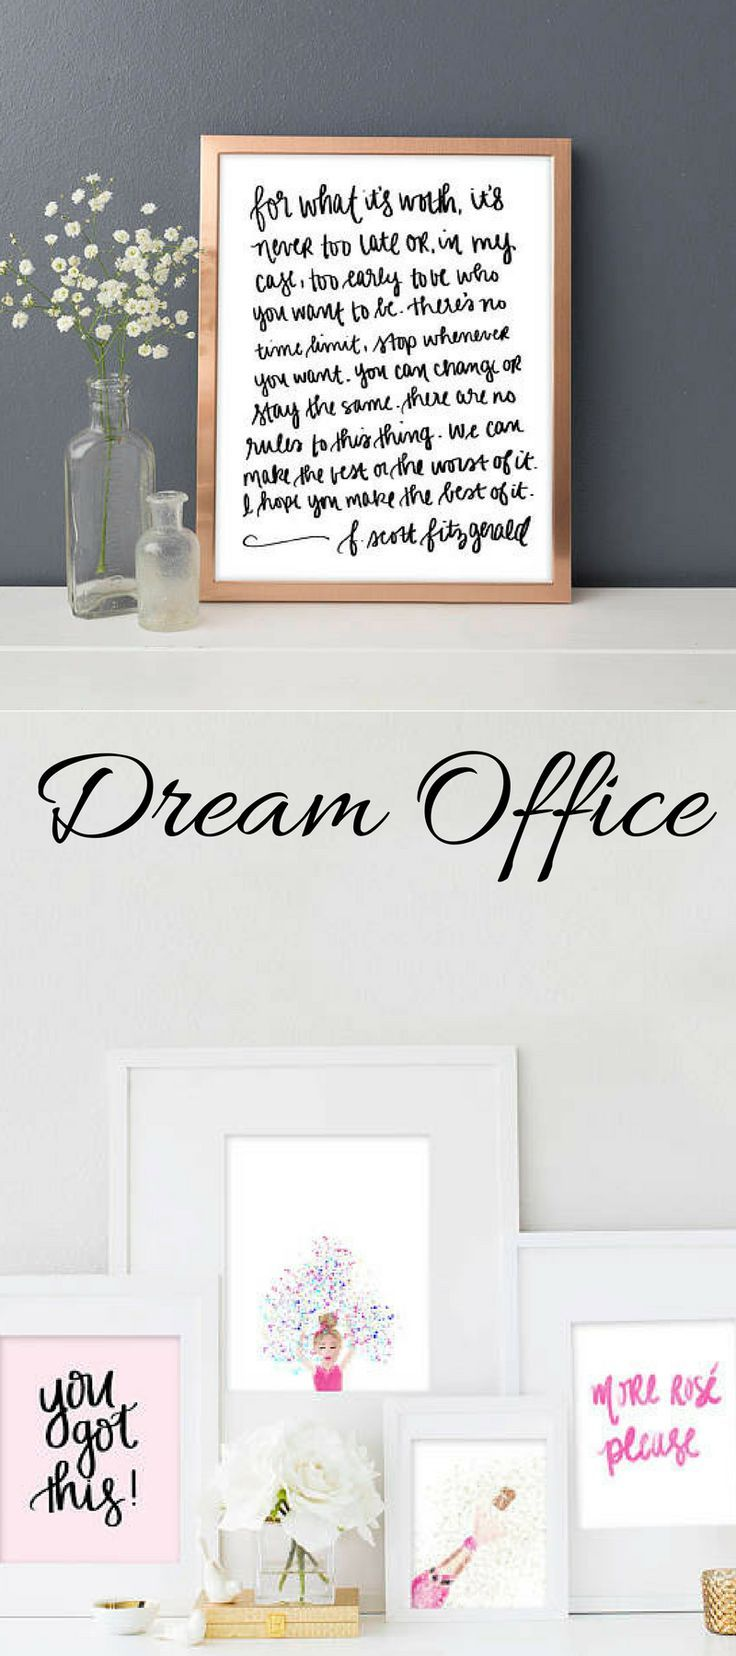 Office space tps report quote - F Scott Fitzgerald For What It S Worth Print Art Office Decor Home Decor Boss Lady Girl Boss Motivational Motivational Quote 15 80 Add A Touch Of